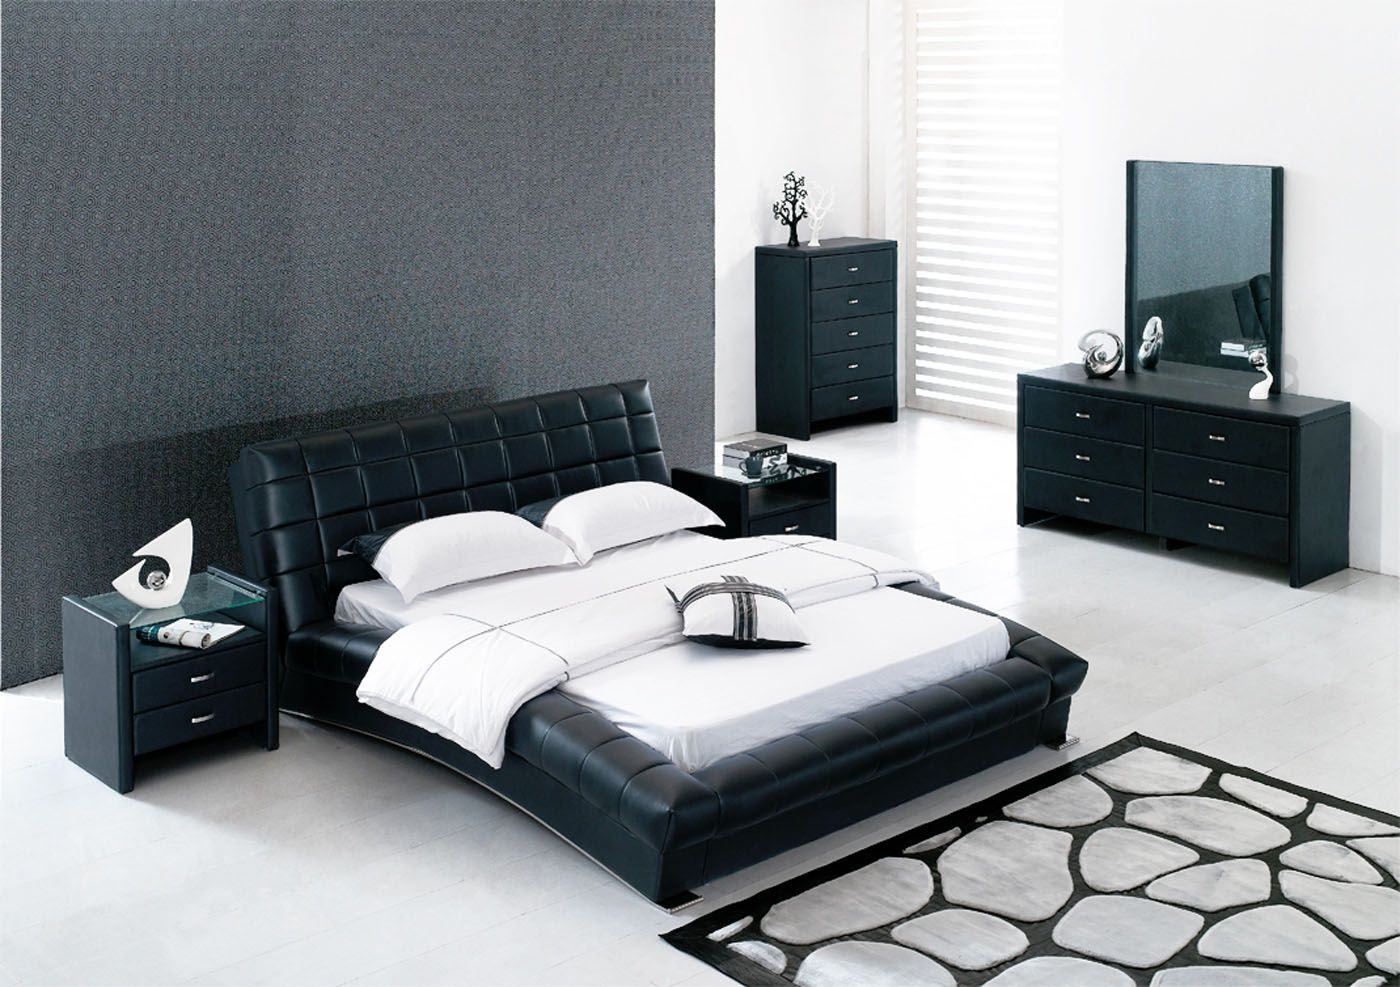 Bachelor Bedroom Sets. bachelors bedroom bachelor pad 6